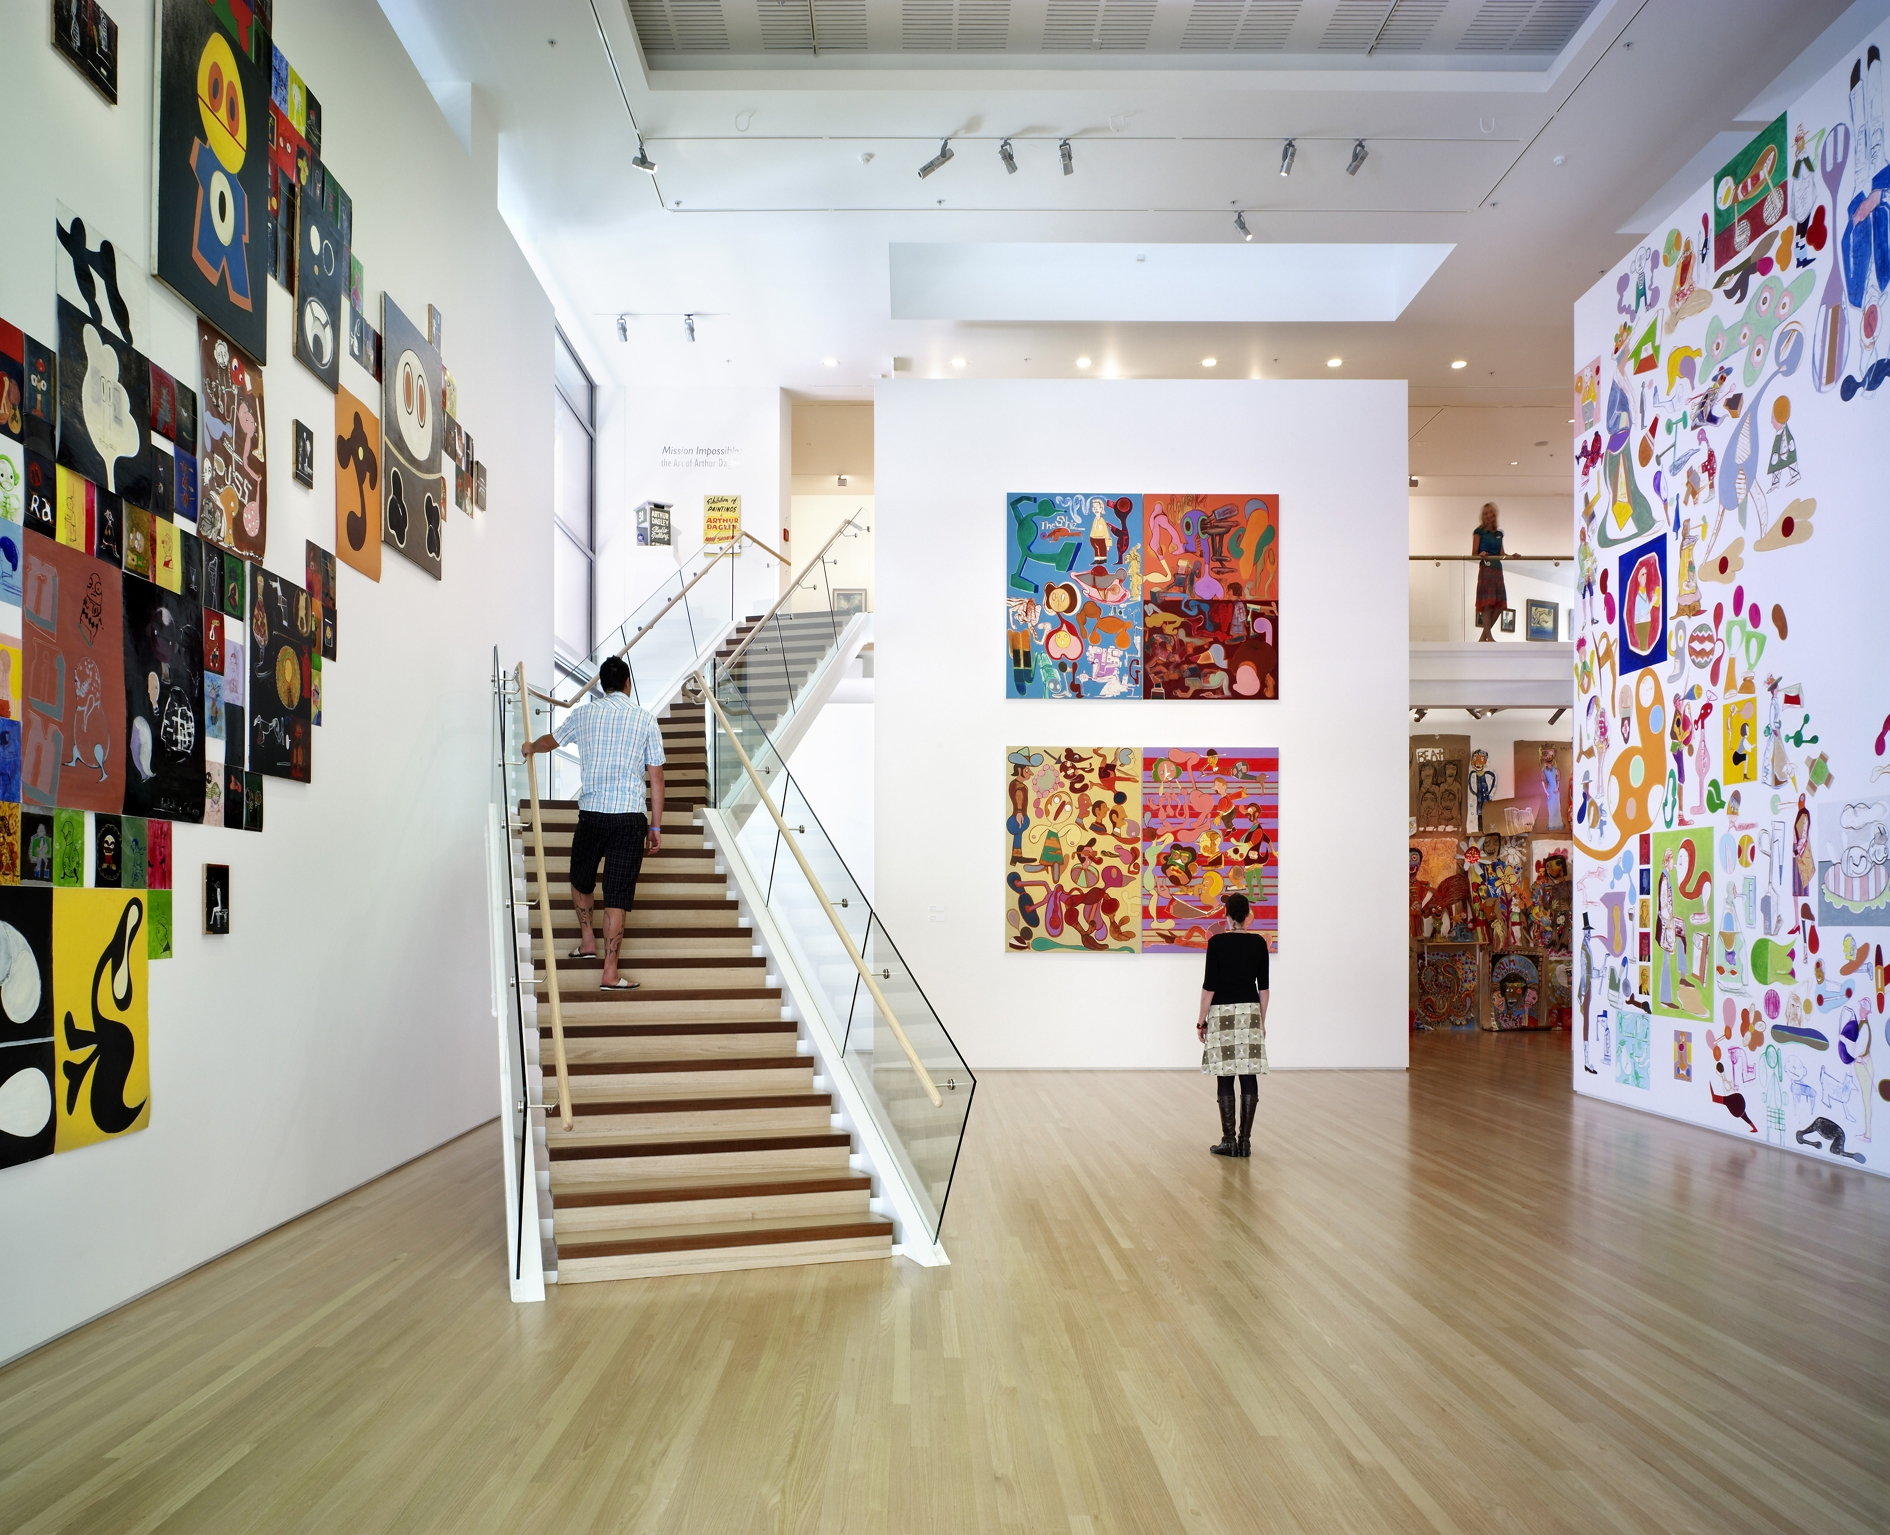 04 Tauranga Art Gallery_Interior view 2.jpg